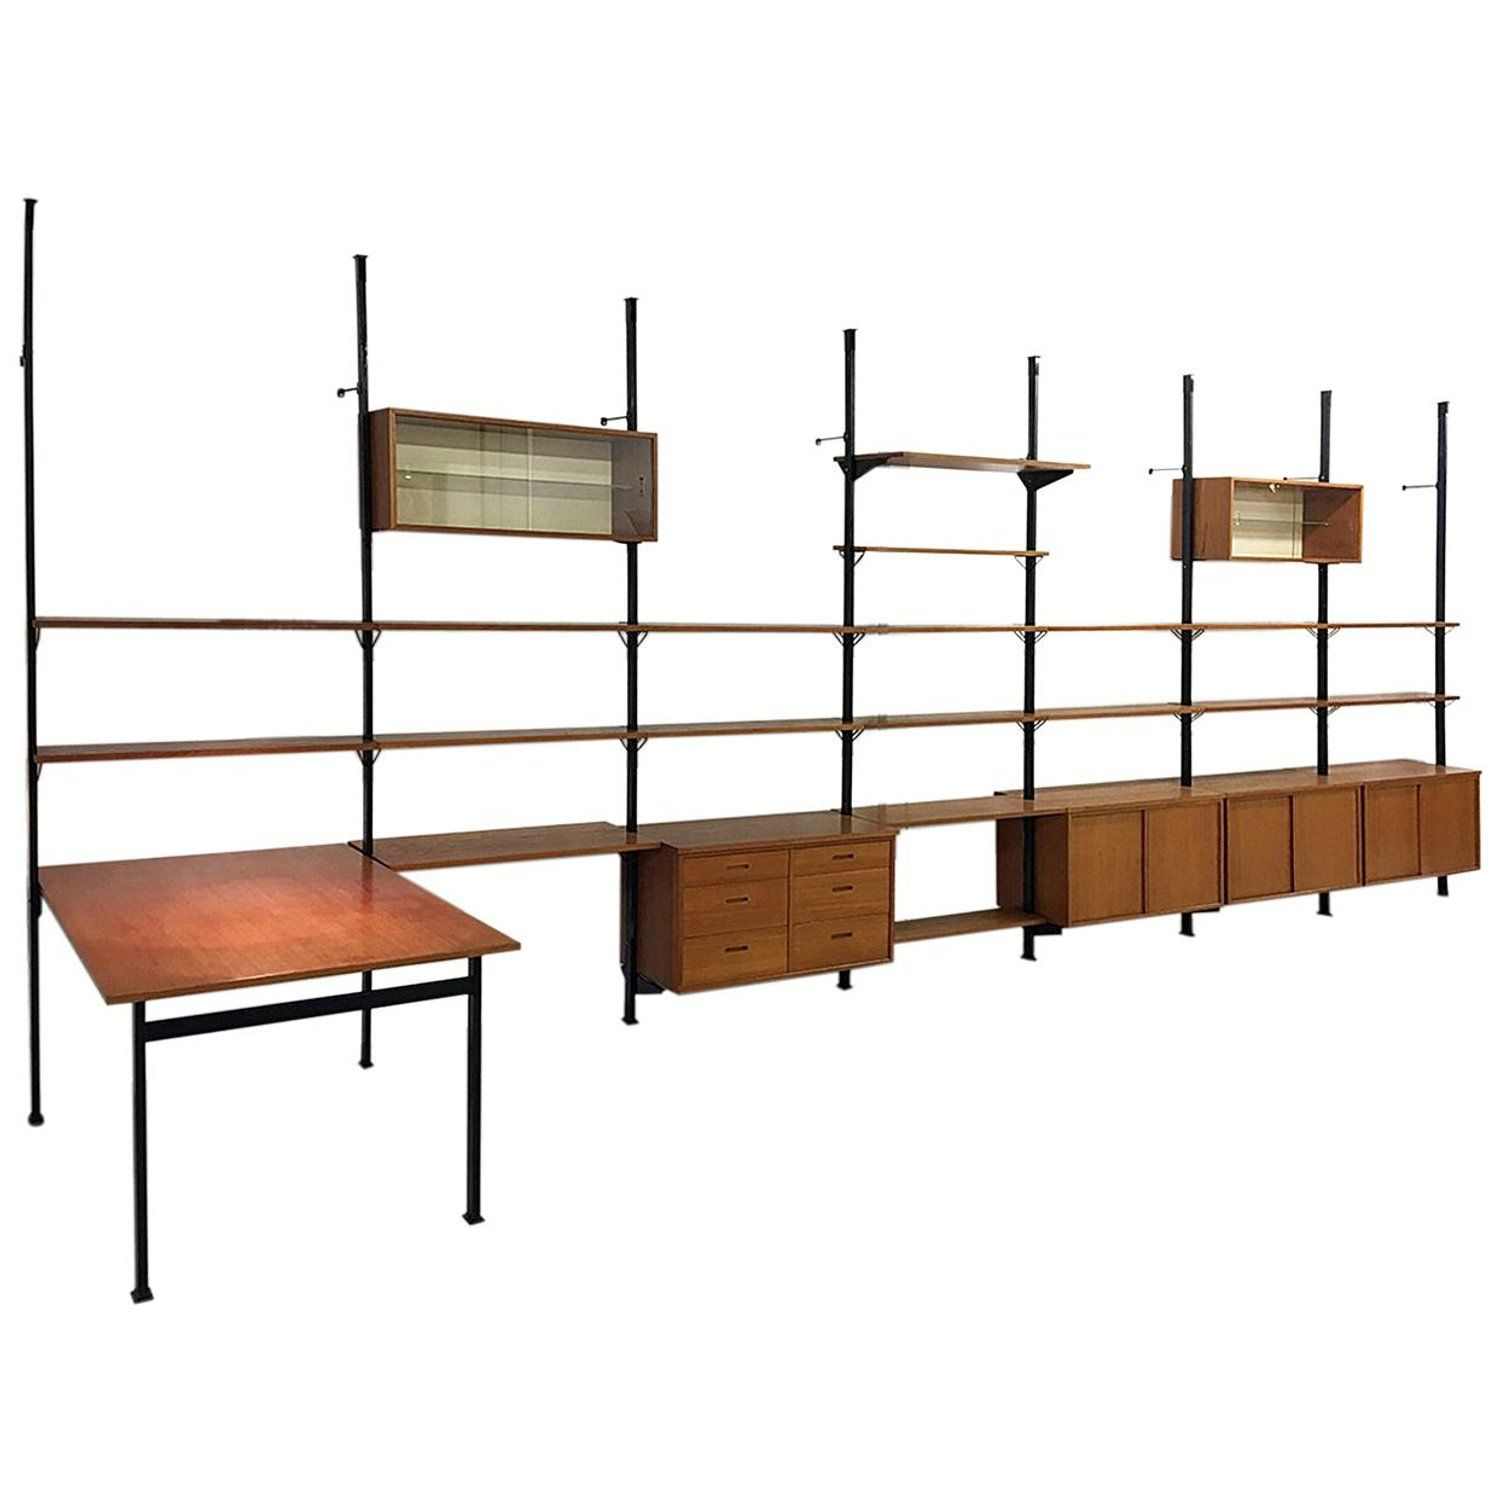 String Regal Vitrine Large 1960s Modular Shelving System Pira By Olaf Pira For